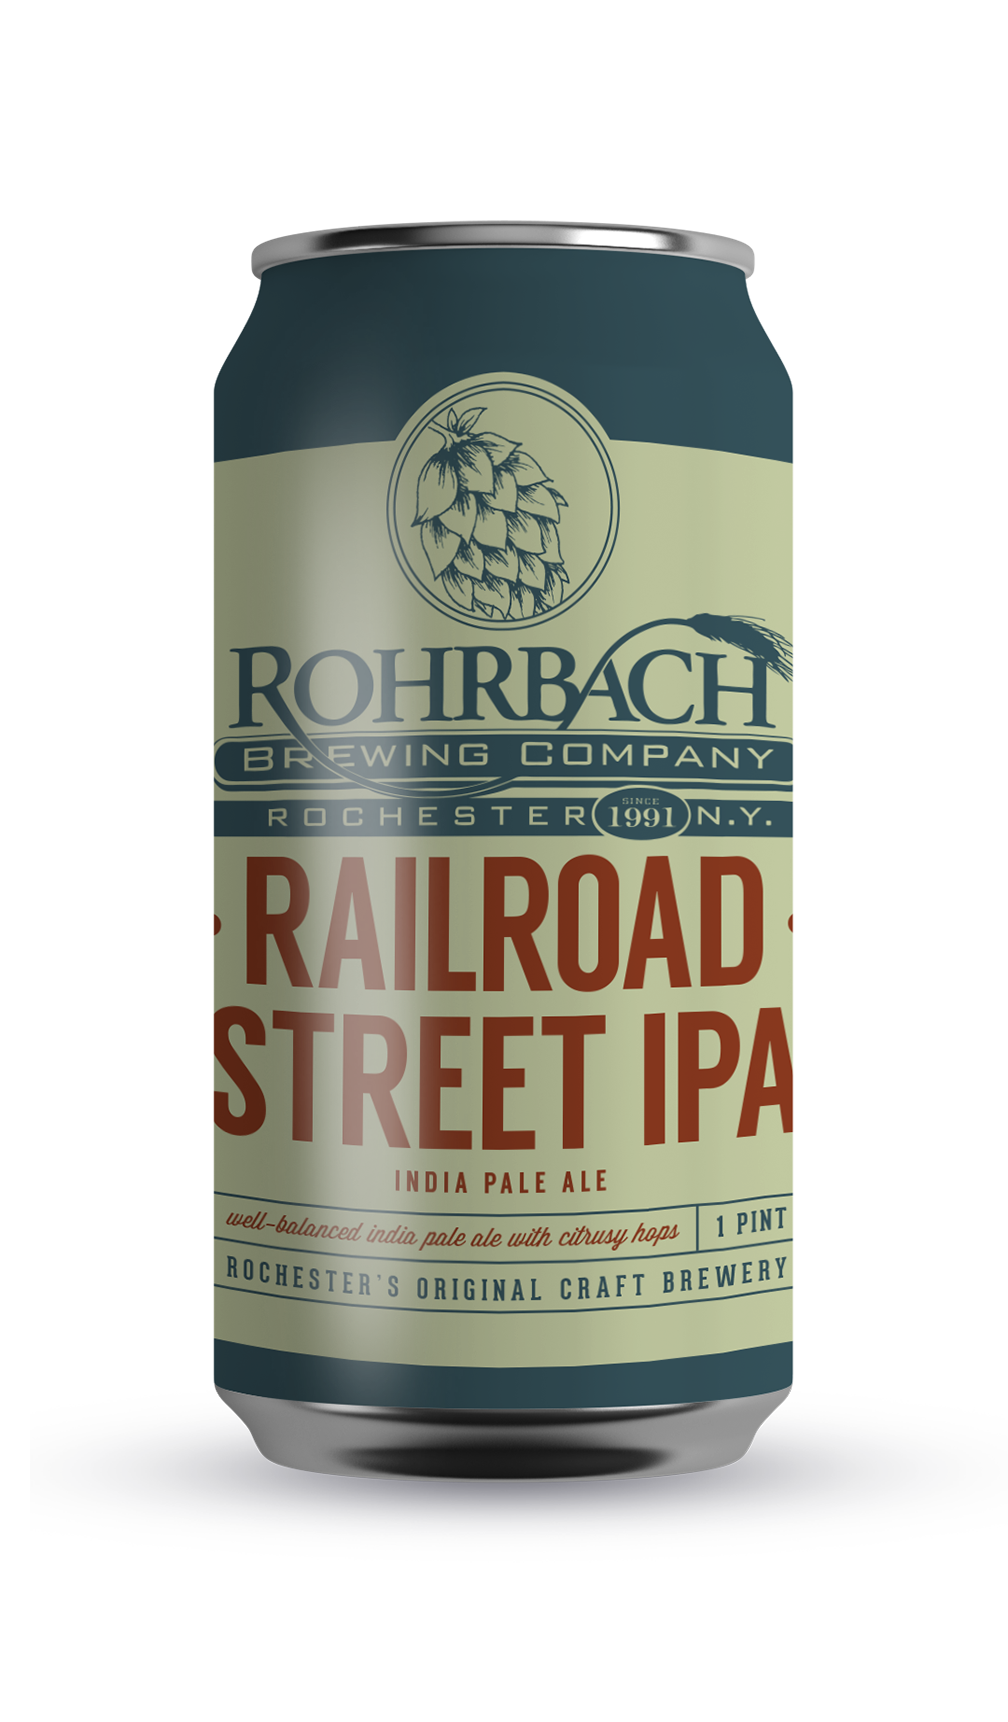 RAILROAD STREET IPA  Named after our brewery's location at the Public Market, Railroad St. IPA is over session India Pale Ale with an overload of citrusy hops.  ABV 6.5% | IBU 66 | SRM 11